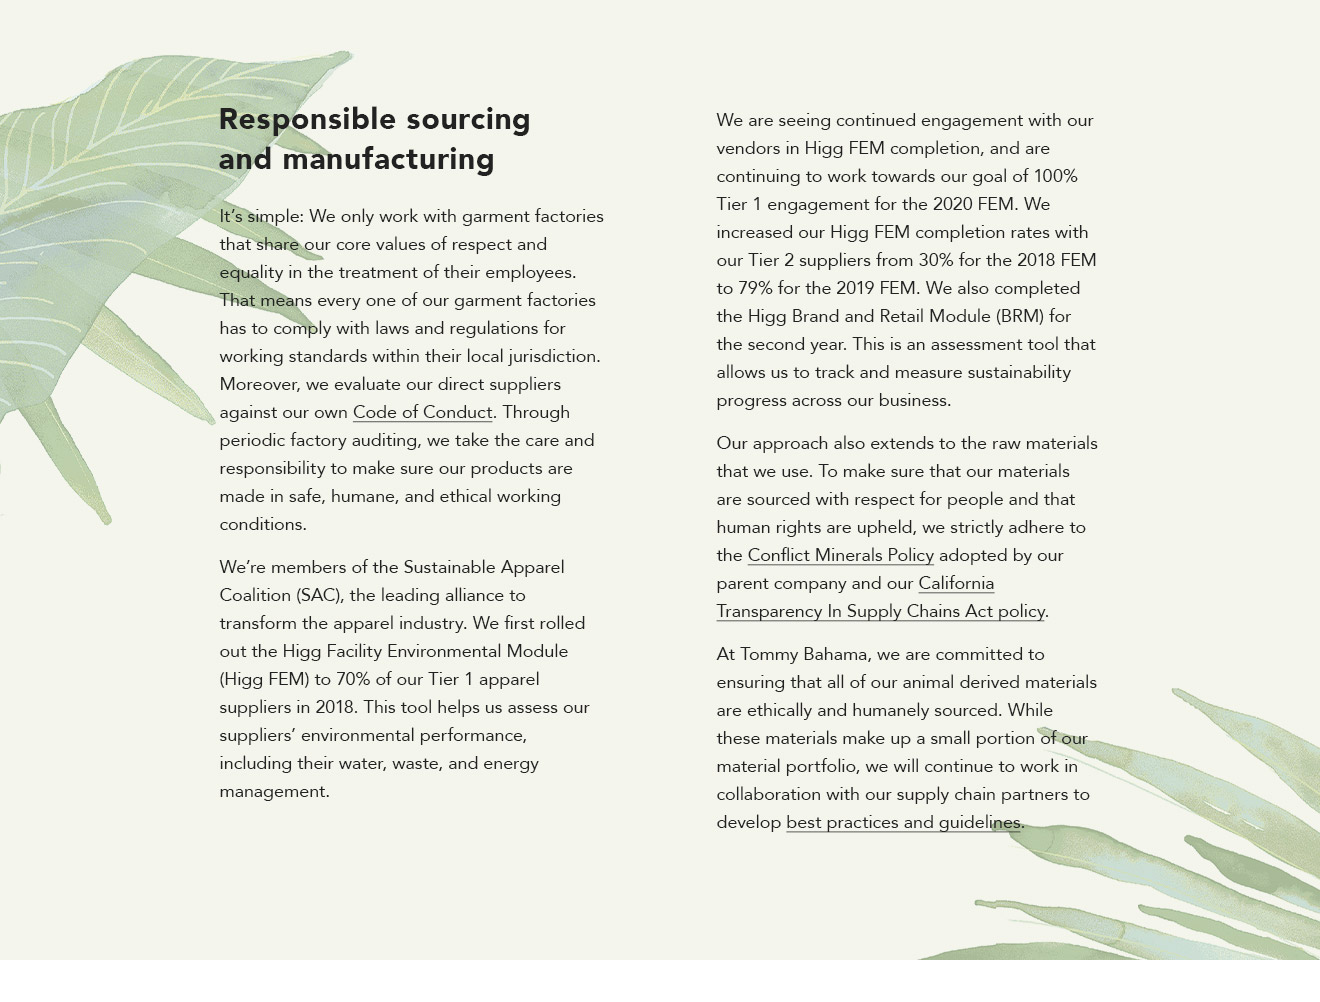 Responsible sourcing and manufacturing